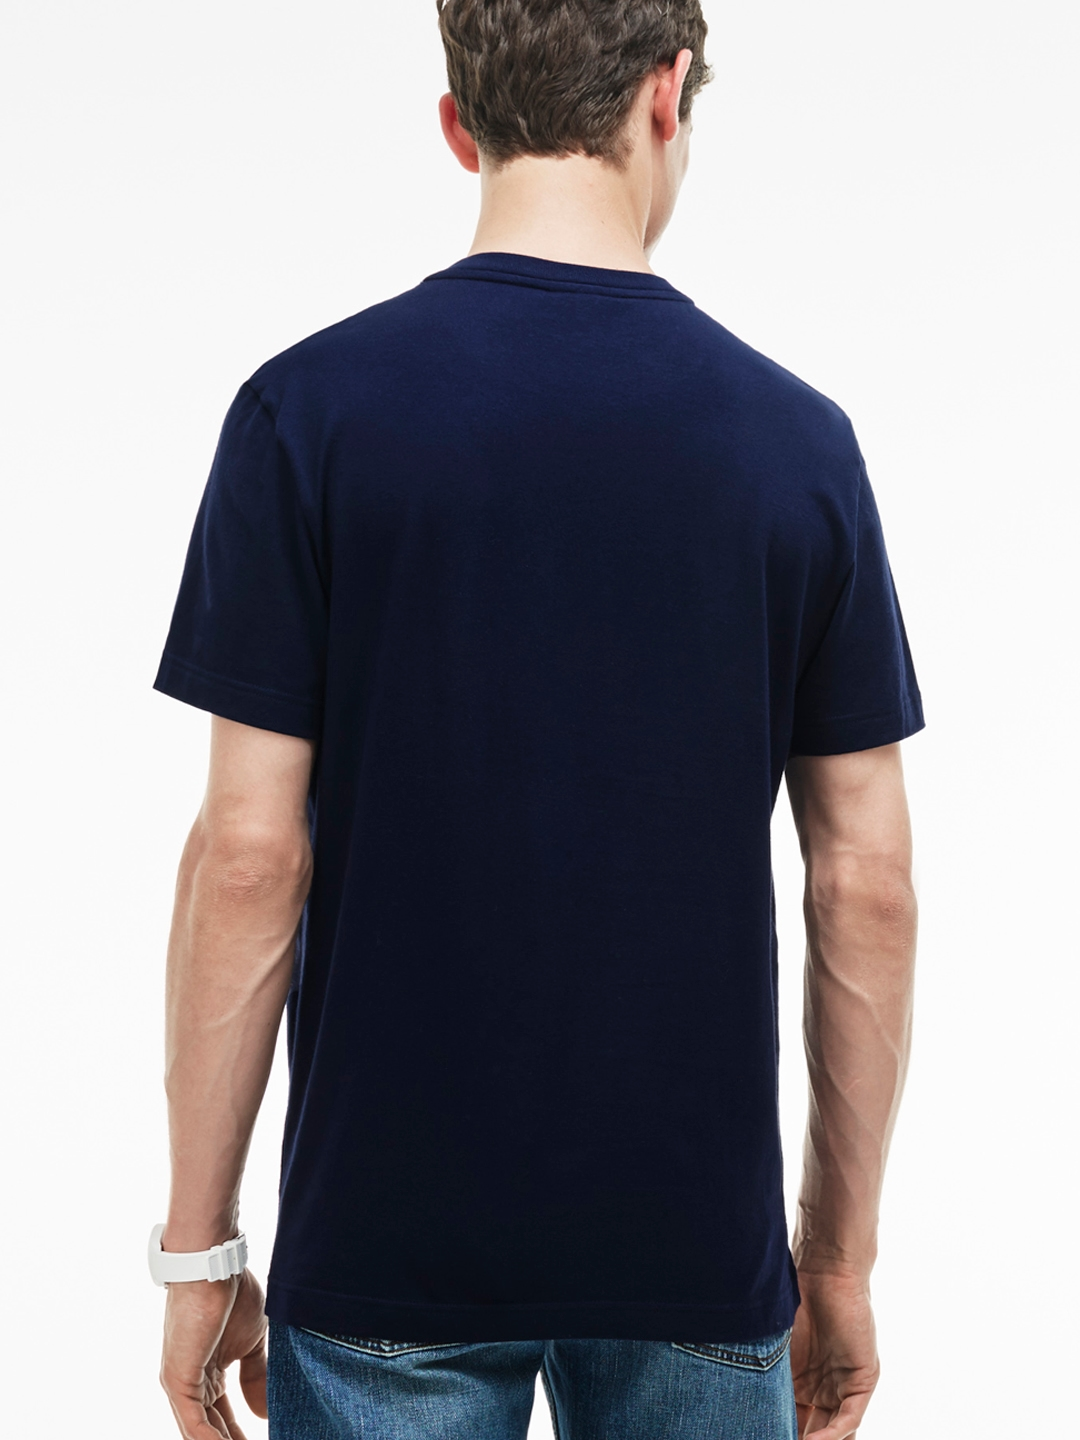 ed746e050461 Buy Lacoste Men Navy Blue Printed Round Neck T Shirt - Tshirts for ...